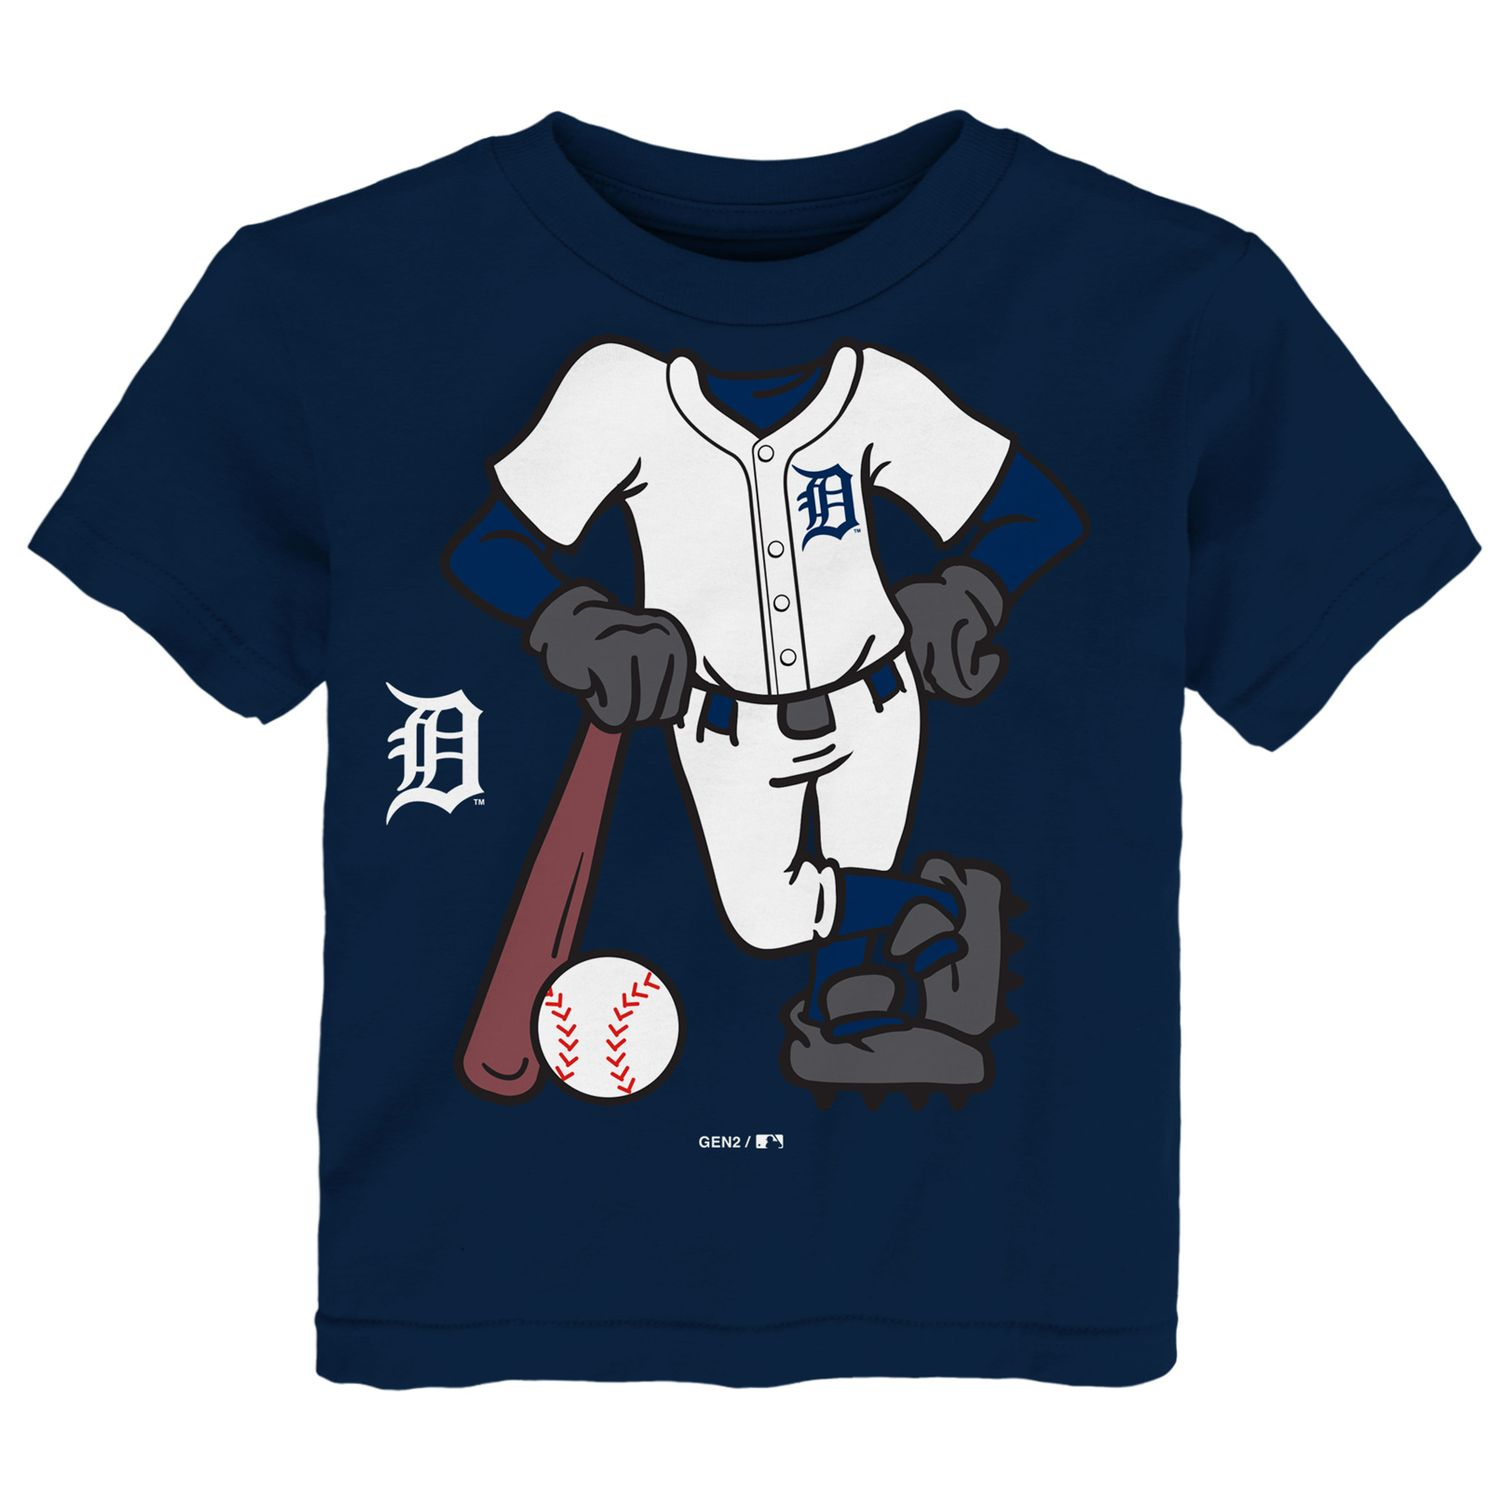 22502190e Detroit Tigers Apparel & Gear | Kohl's